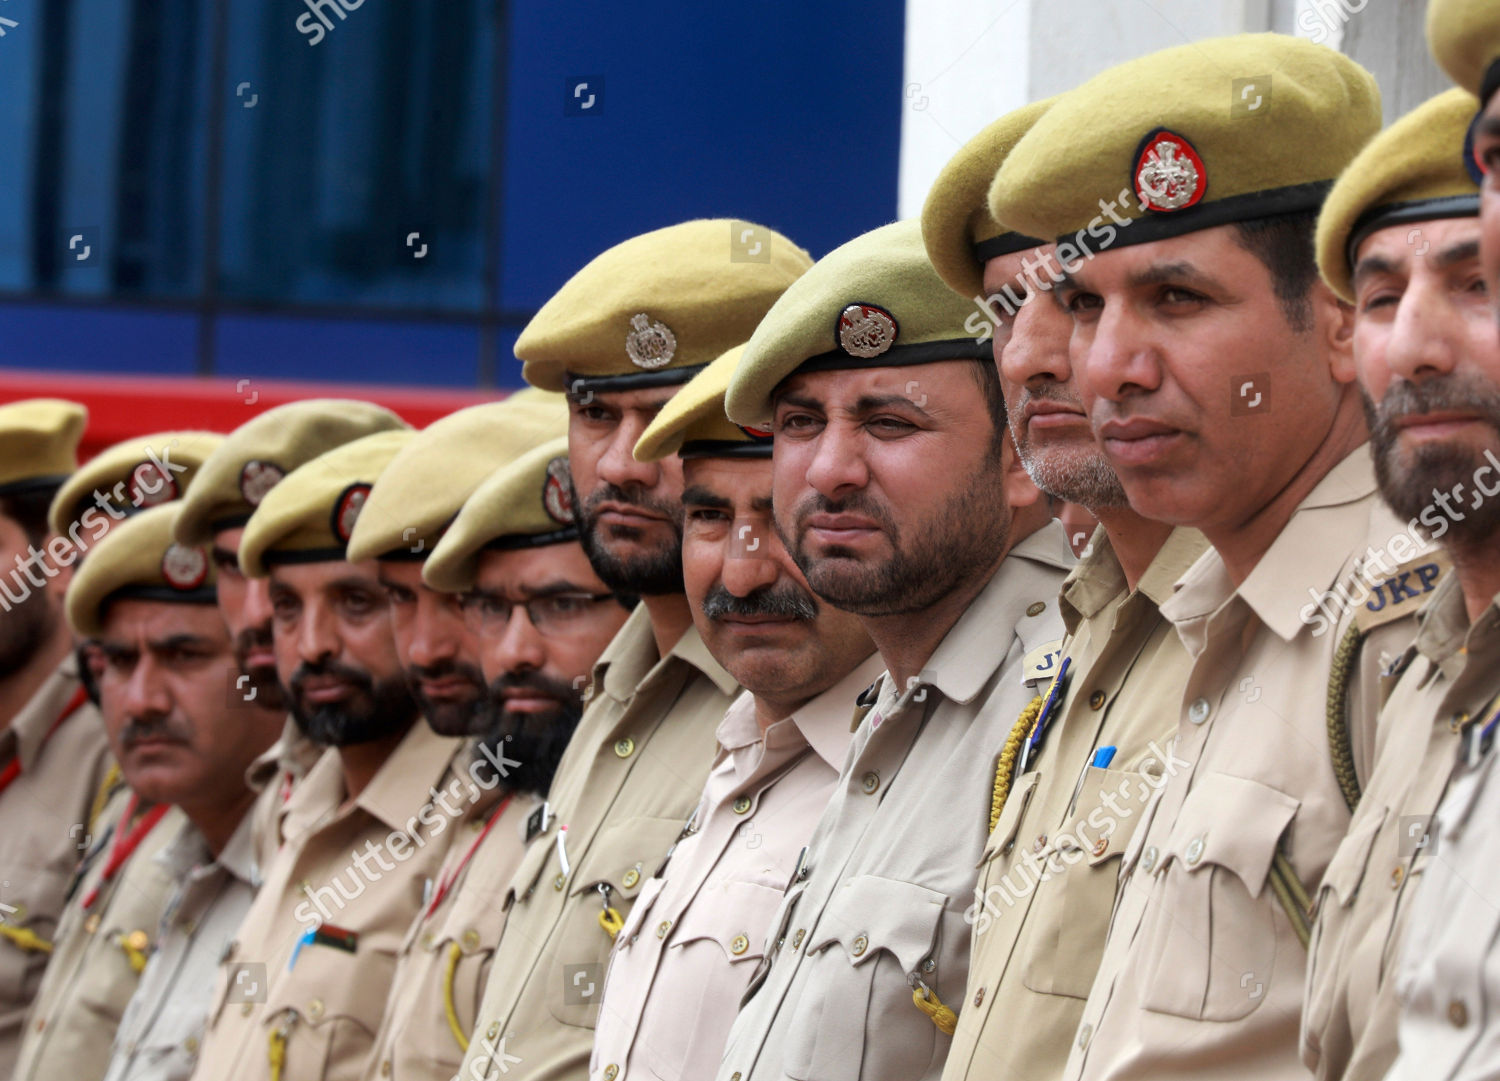 Tributes Paid to Martyred Policemen on the National Police Memorial Day